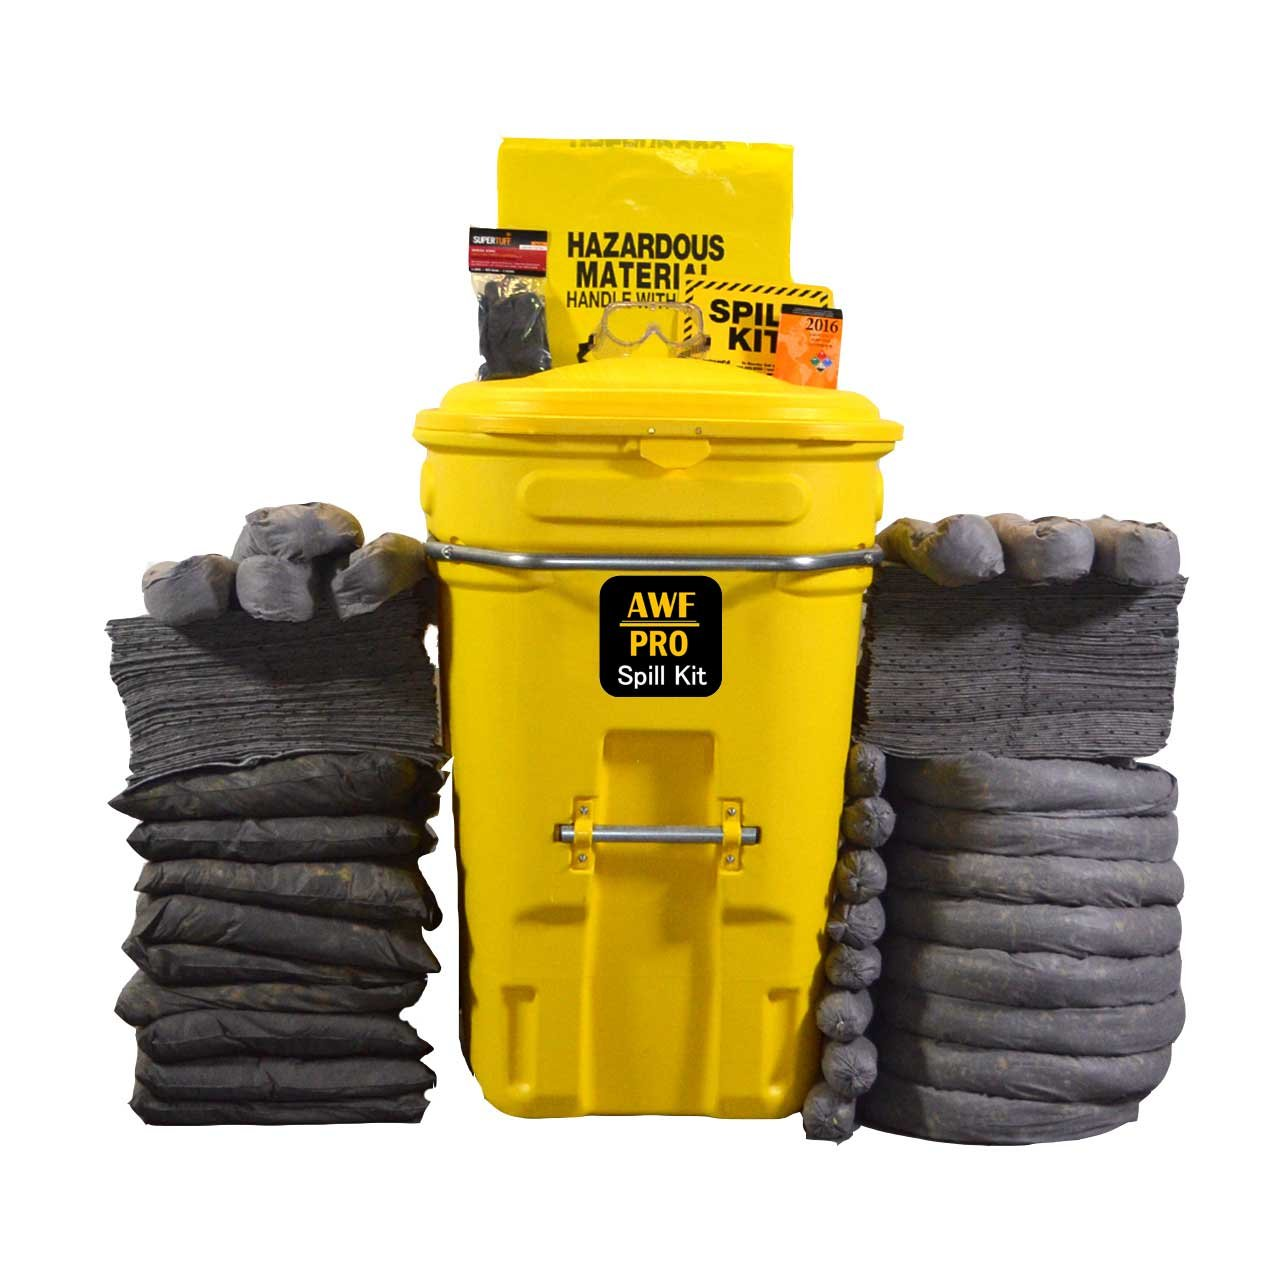 95 Gallon Universal Spill Kit, Pro Grade, 190 Pc.: Wheeled Cart, 150 Heavy Duty Pads 15x19, 8 Socks 3x12, 8 Socks 3''x4', 9 Pillows 18x18, Chemical Gloves, Hazmat Bags, Goggles, Guide Book, Sign